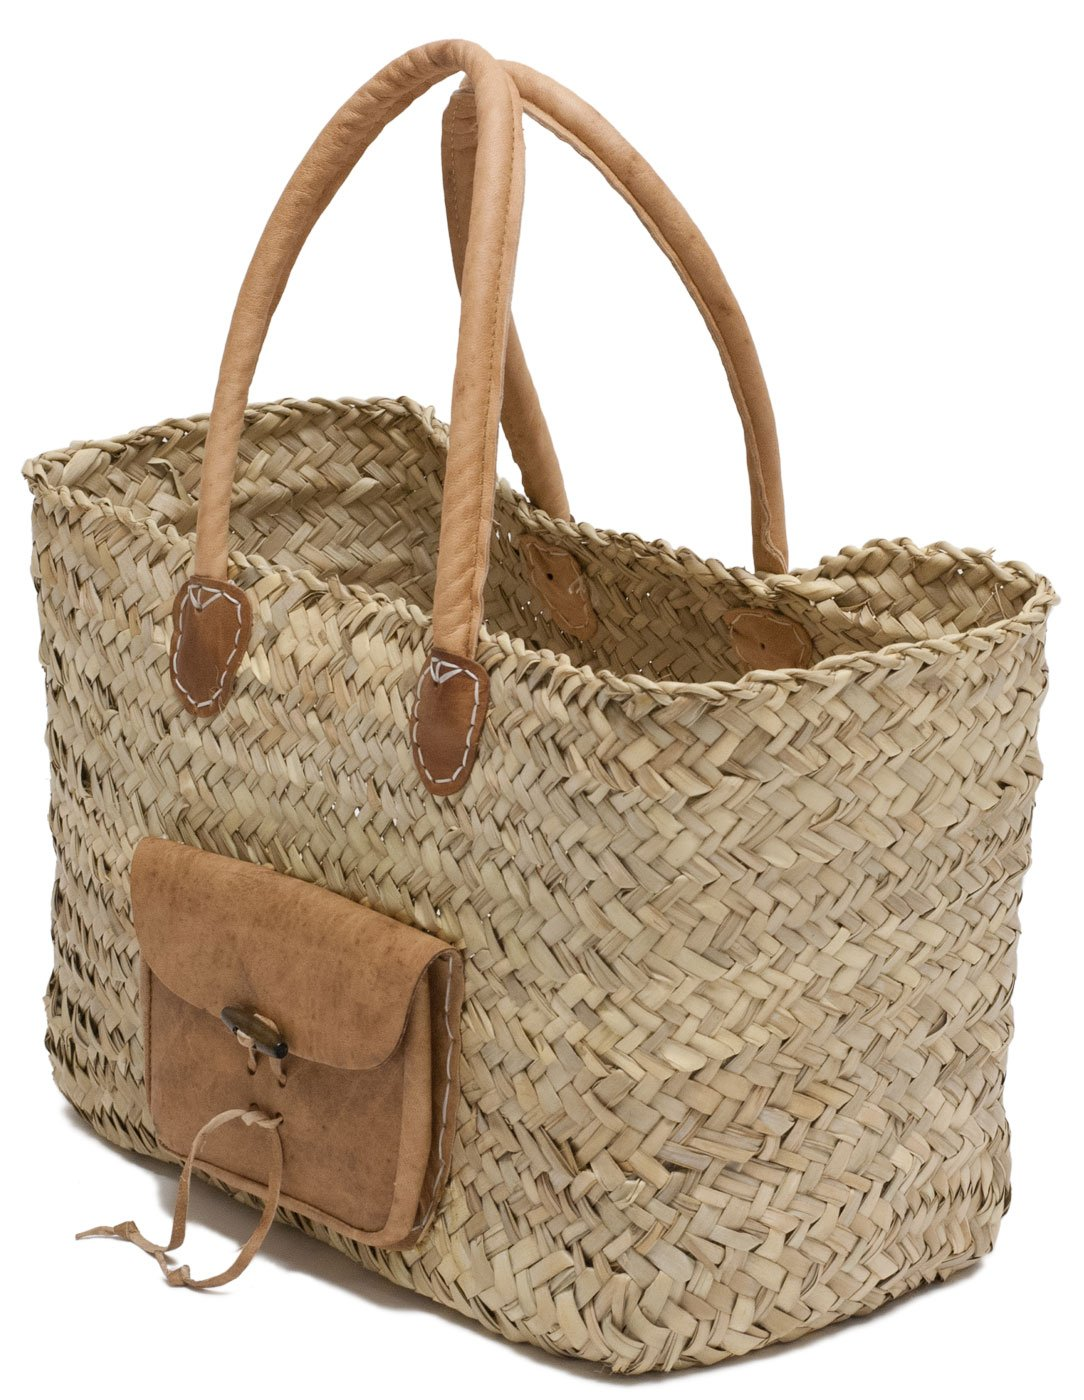 20Lx7Wx11H Moroccan Straw Tote Bag w//Brown Leather Handles /& Pocket Nice